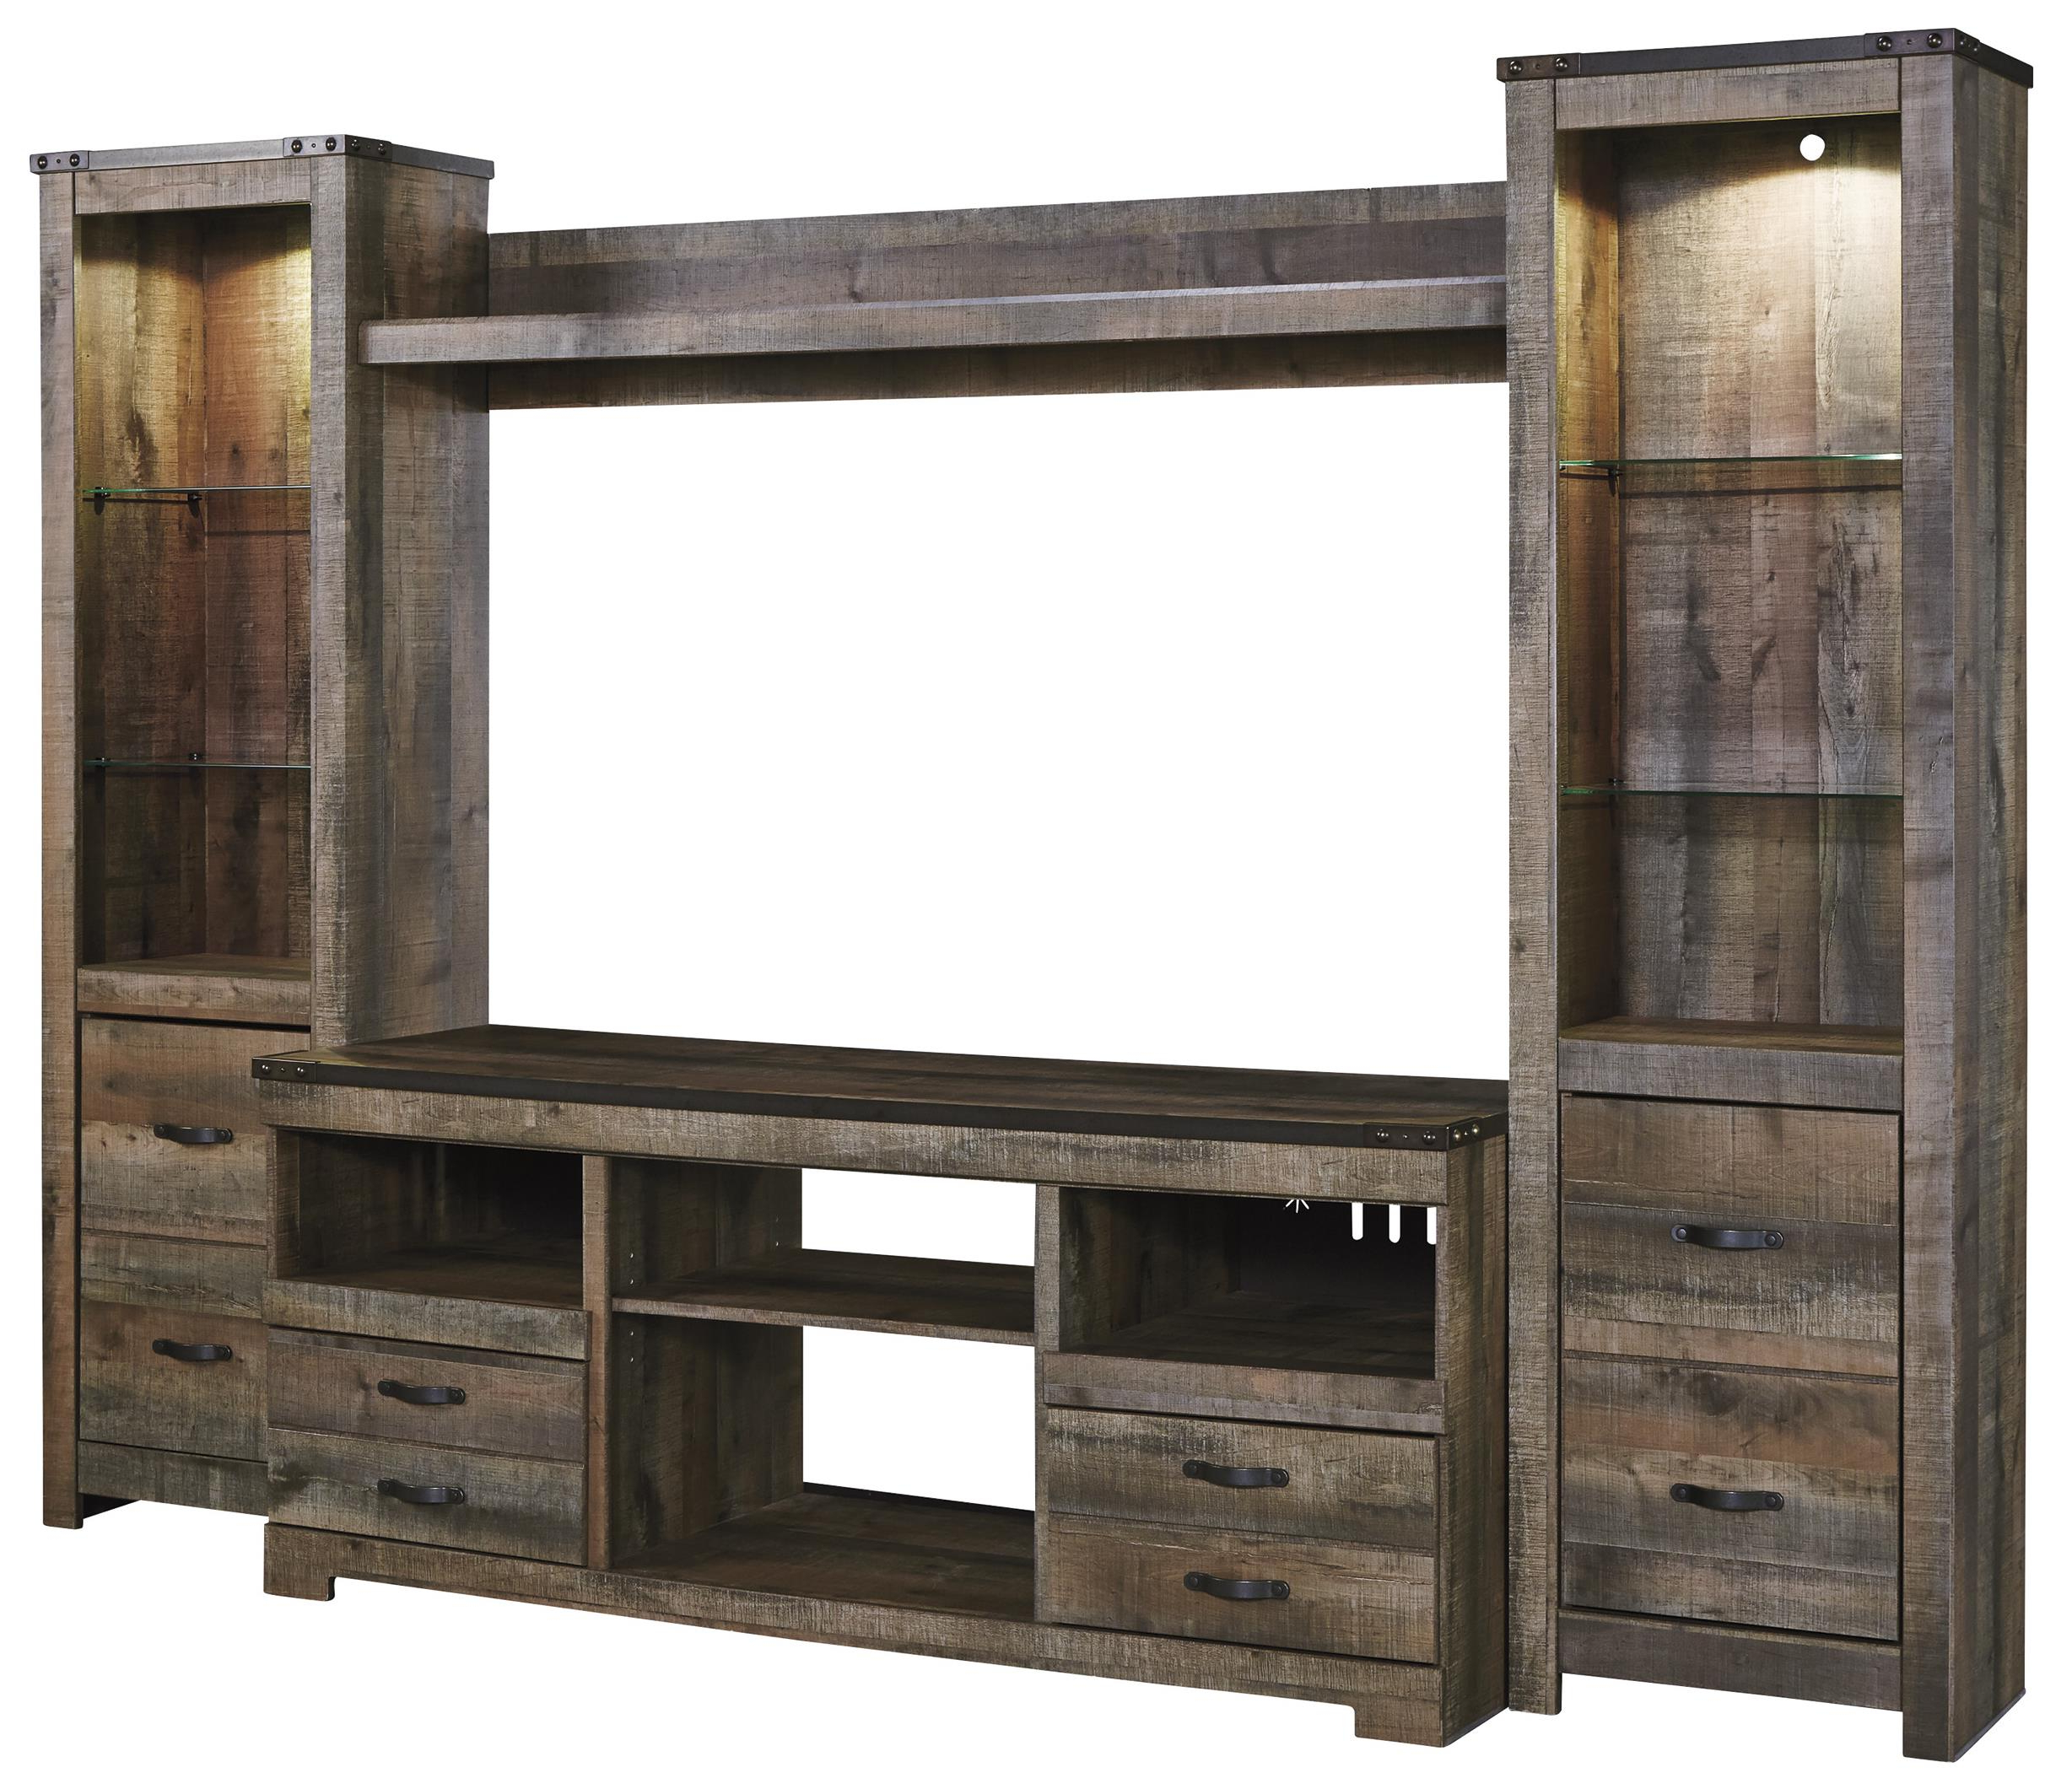 Newest Urban Rustic Rustic Large Tv Stand & 2 Tall Piers W/ Bridge In Rustic Tv Stands (View 6 of 20)